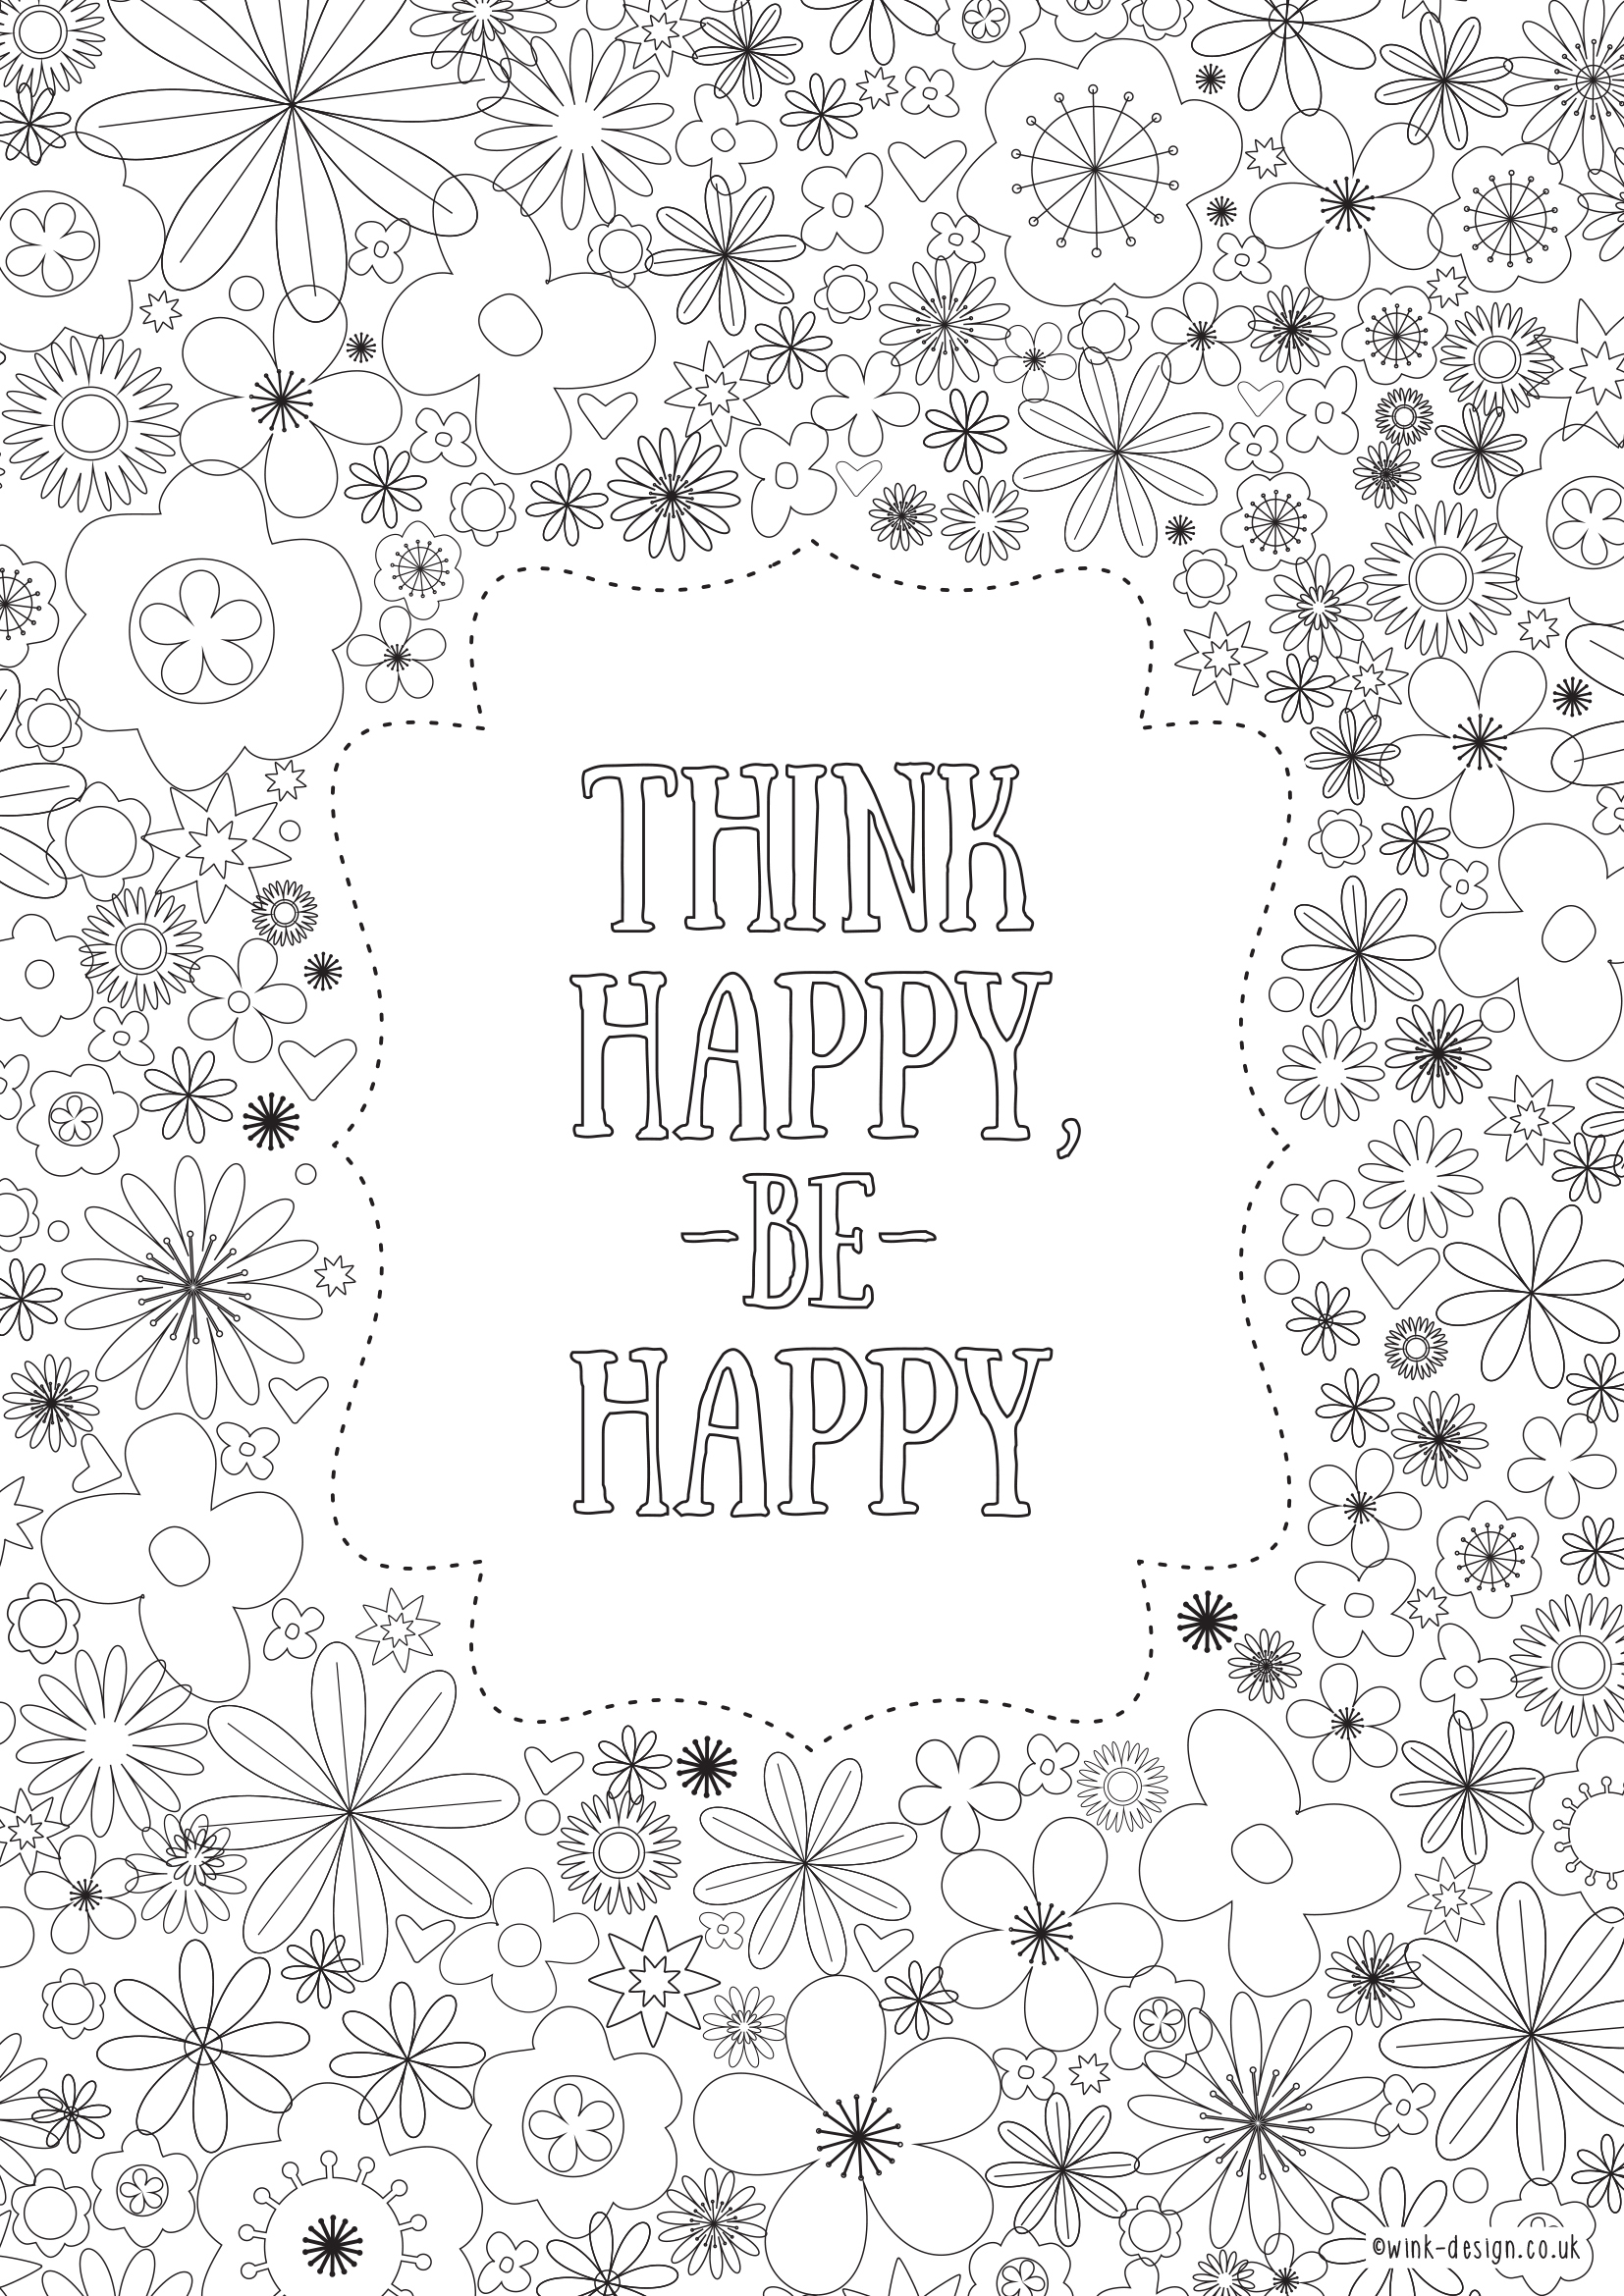 Coloring Pages : Coloring Pages Printable Quotes Free Adult - Free Printable Inspirational Coloring Pages